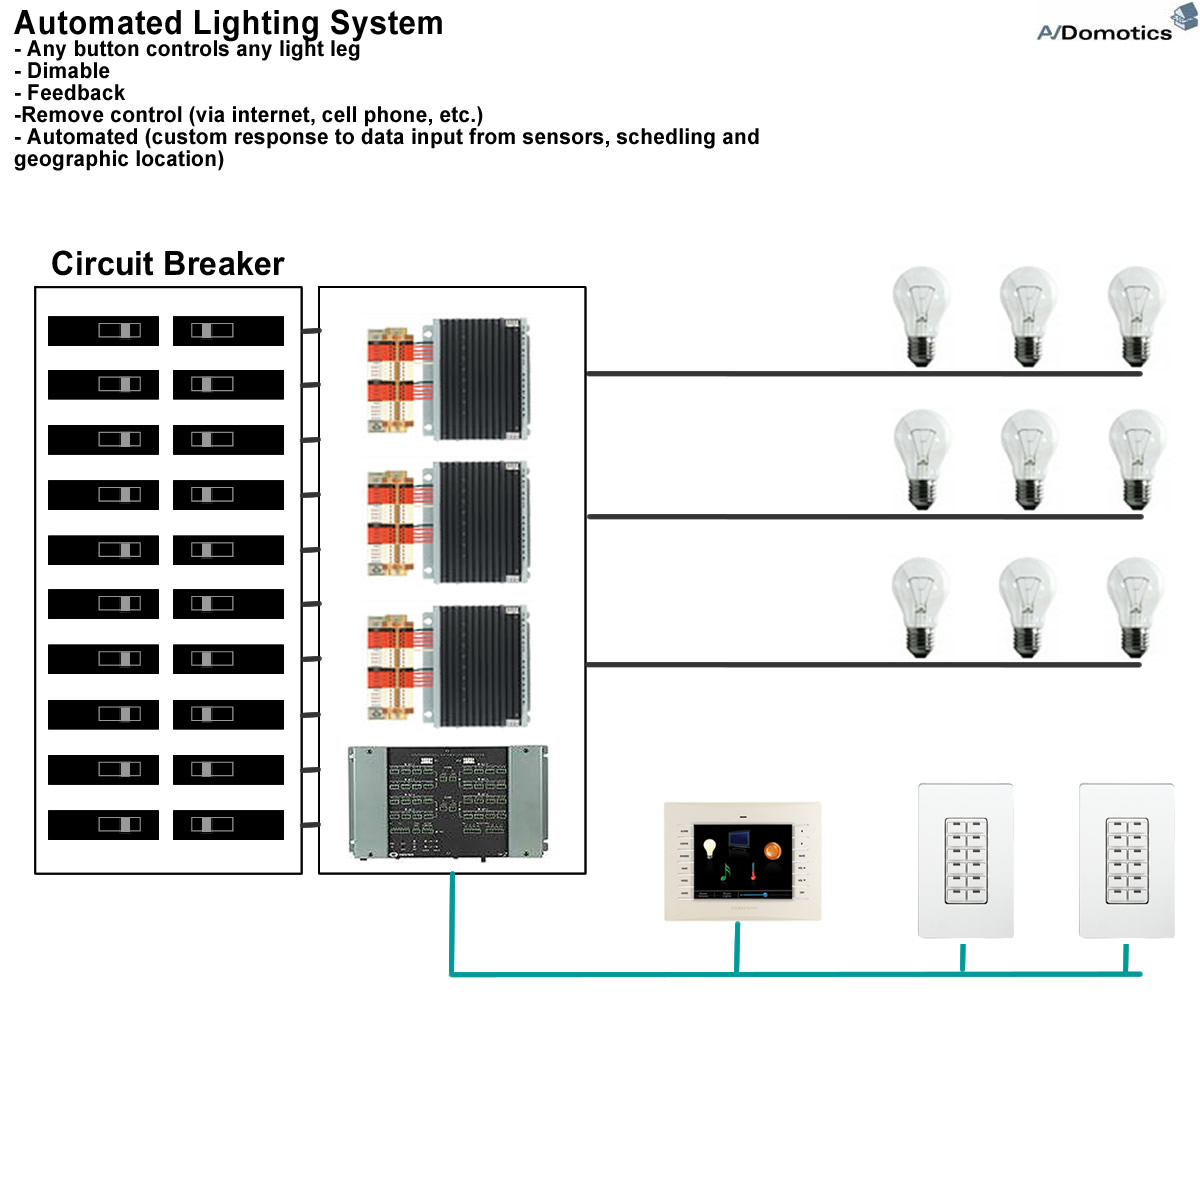 Avdomotics Smart Home Technology Diagram Of Lighting System